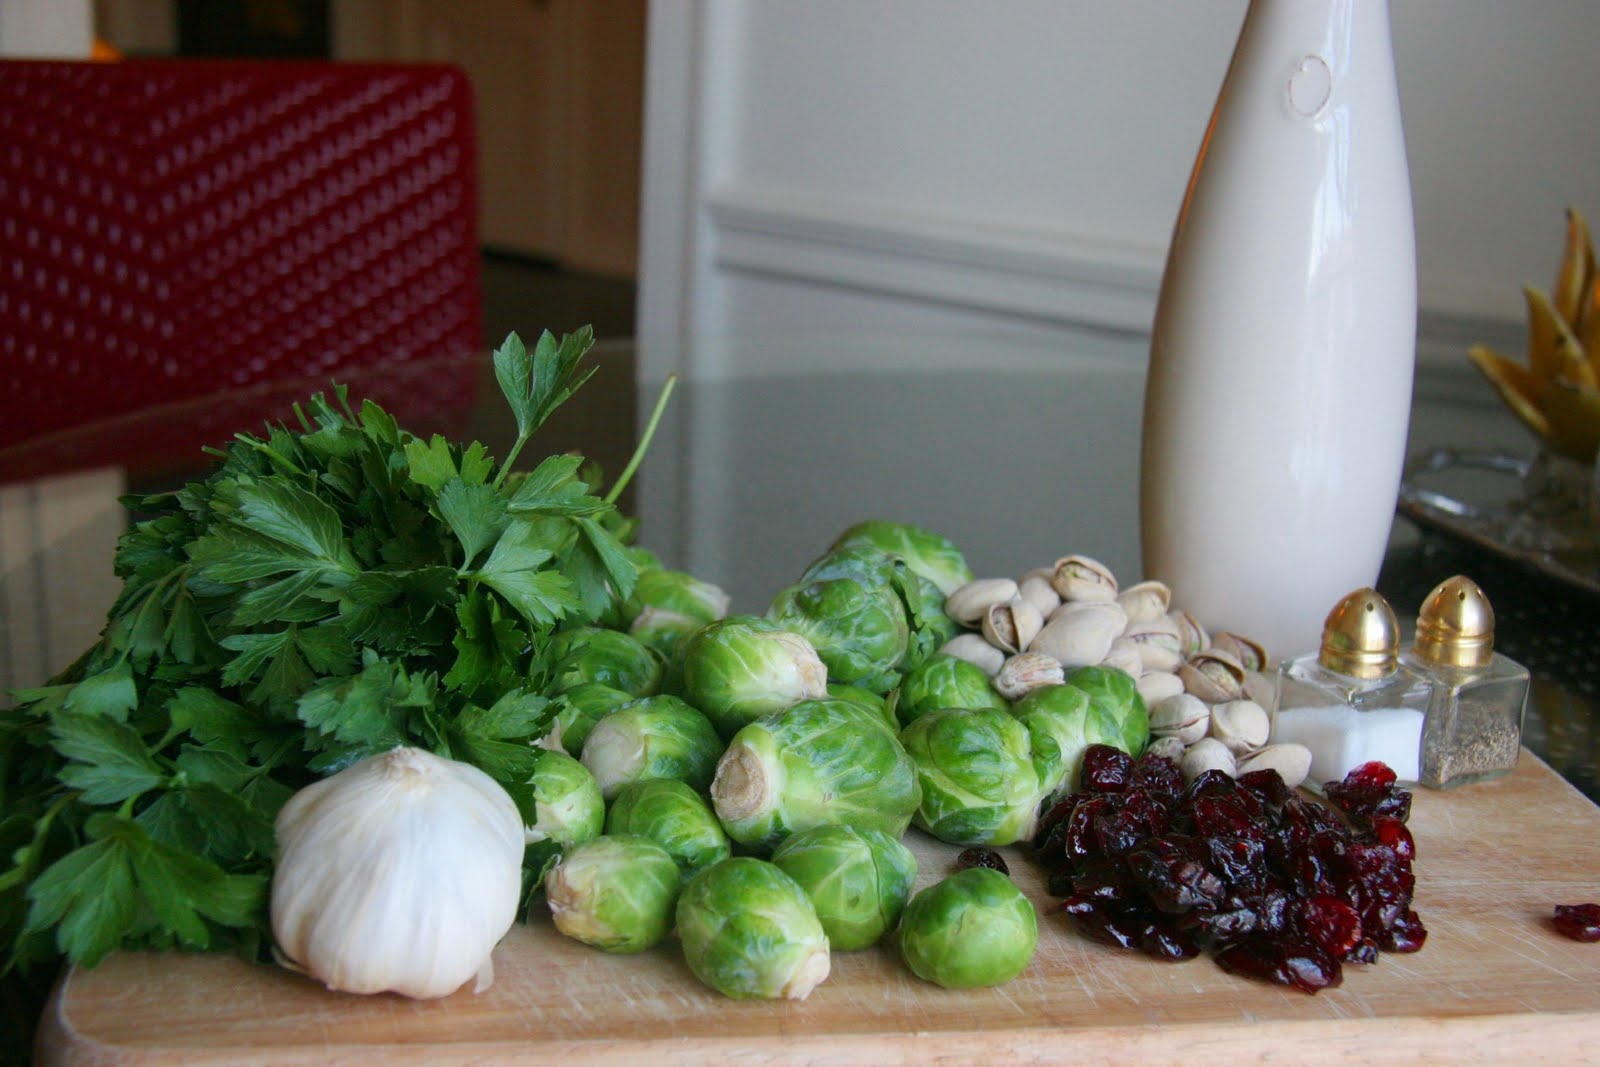 ... Cookin' Now: Roasted Brussels Sprouts with Cranberry Pistachio Pesto